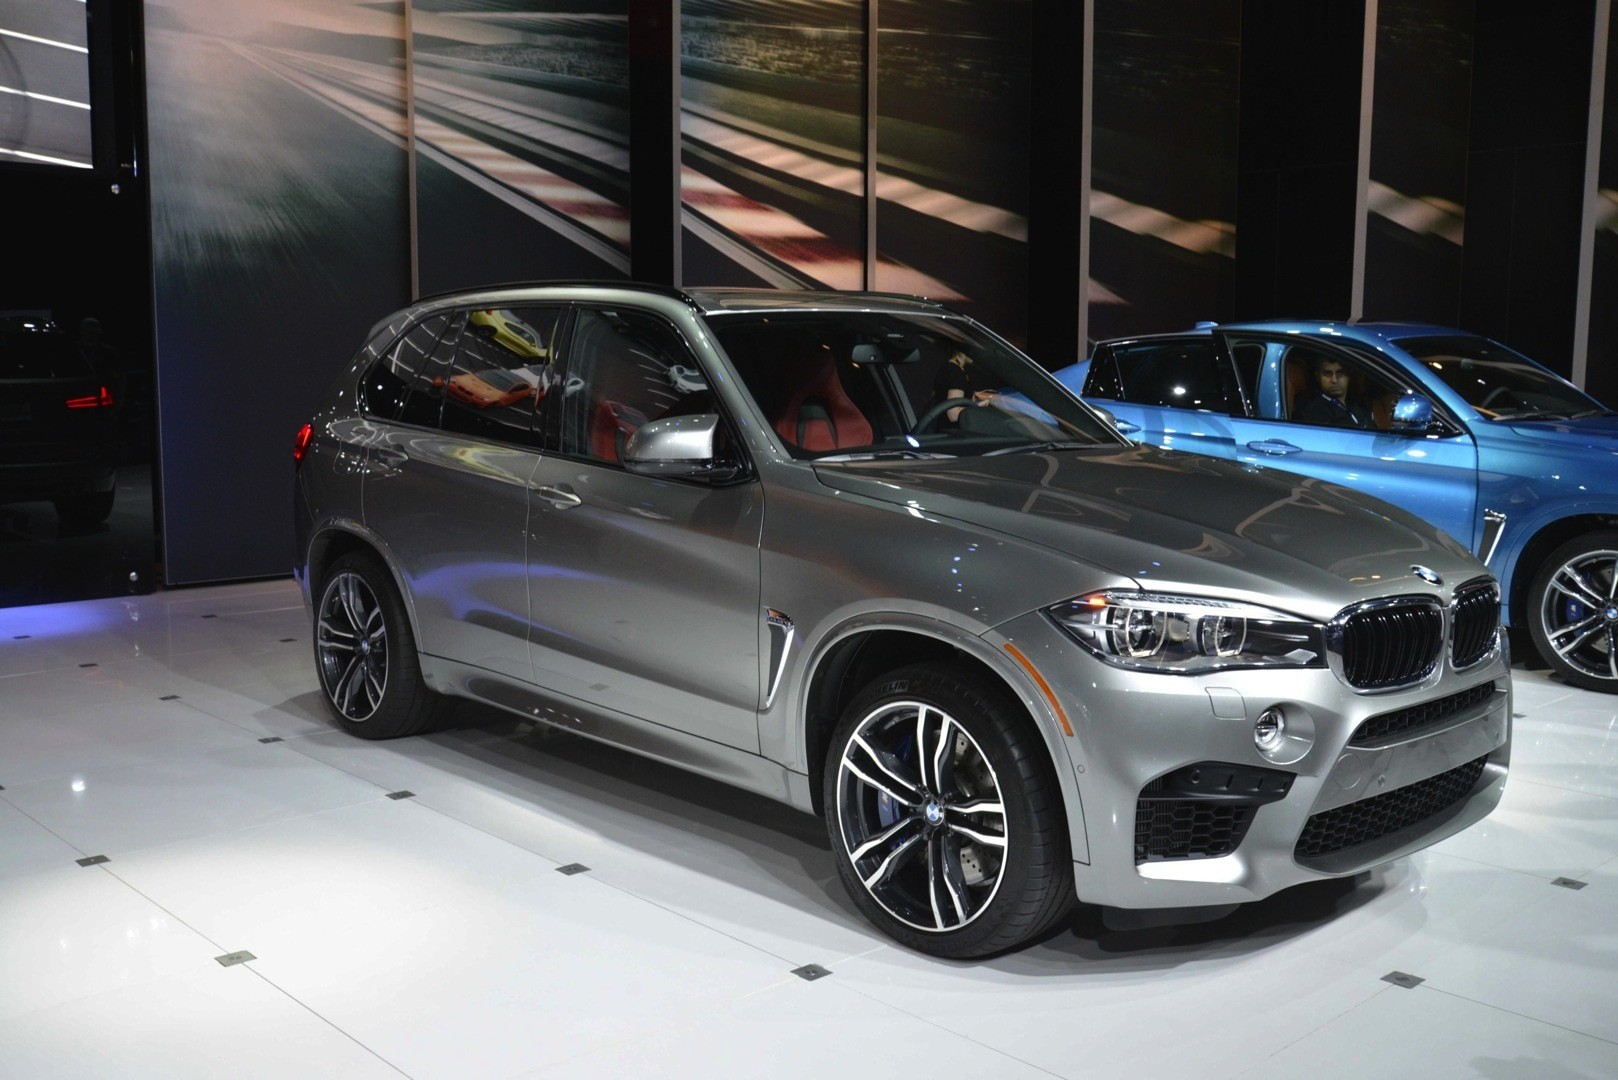 Bmw X5m Wallpaper Hd Bmw X5 M And X6 M Show Up In La With New Colors Live